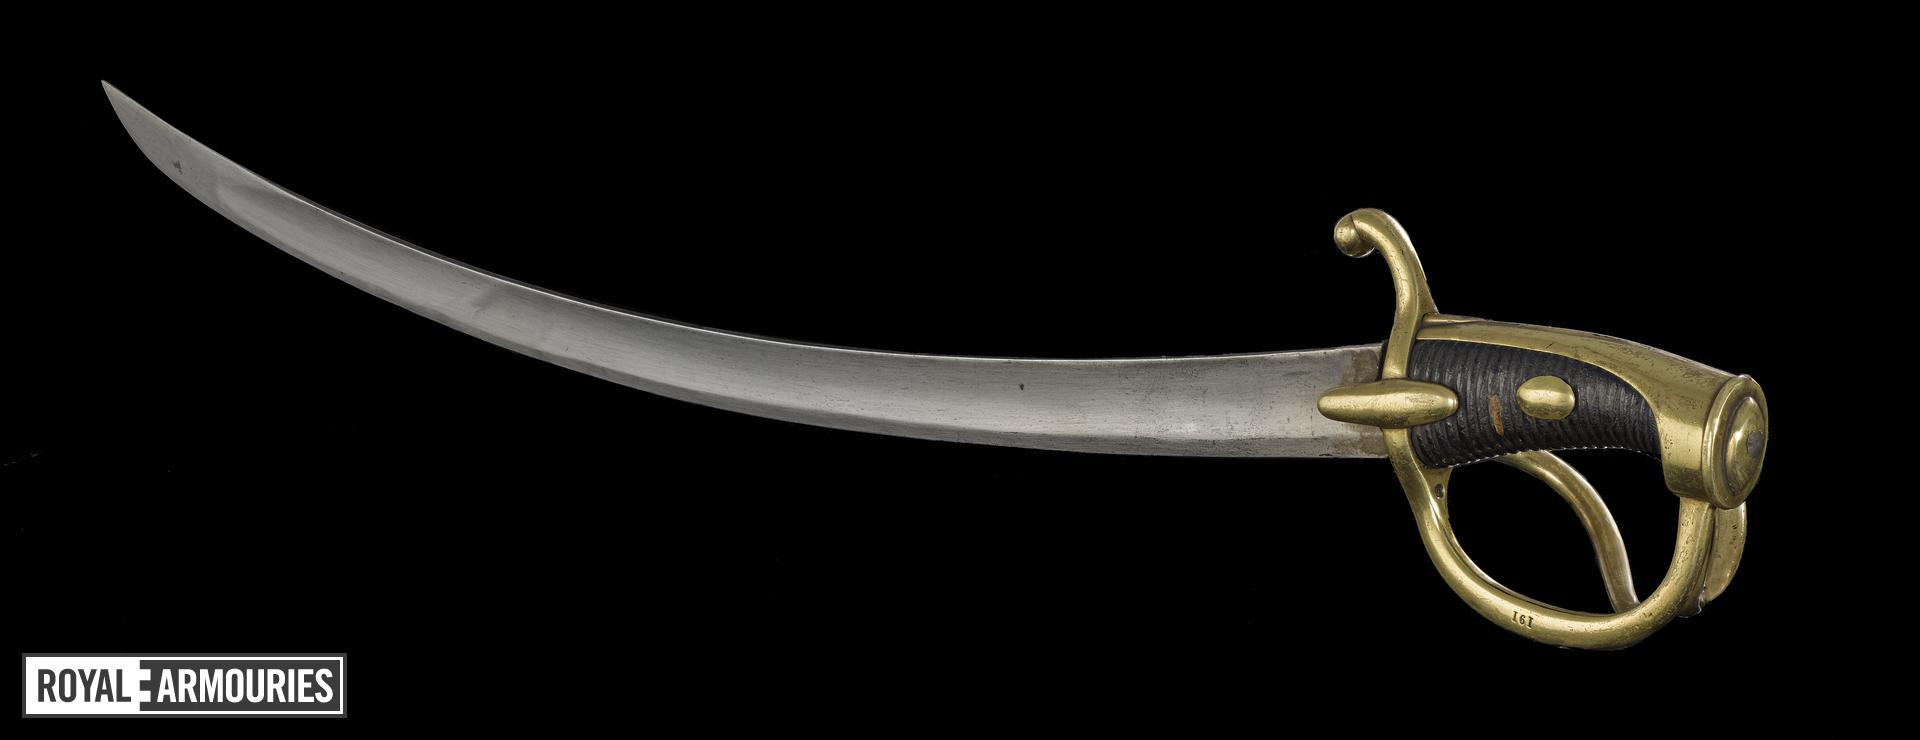 Year IXXI Light Cavalry Sabre The Battle Of Waterloo Royal Armouries Collections